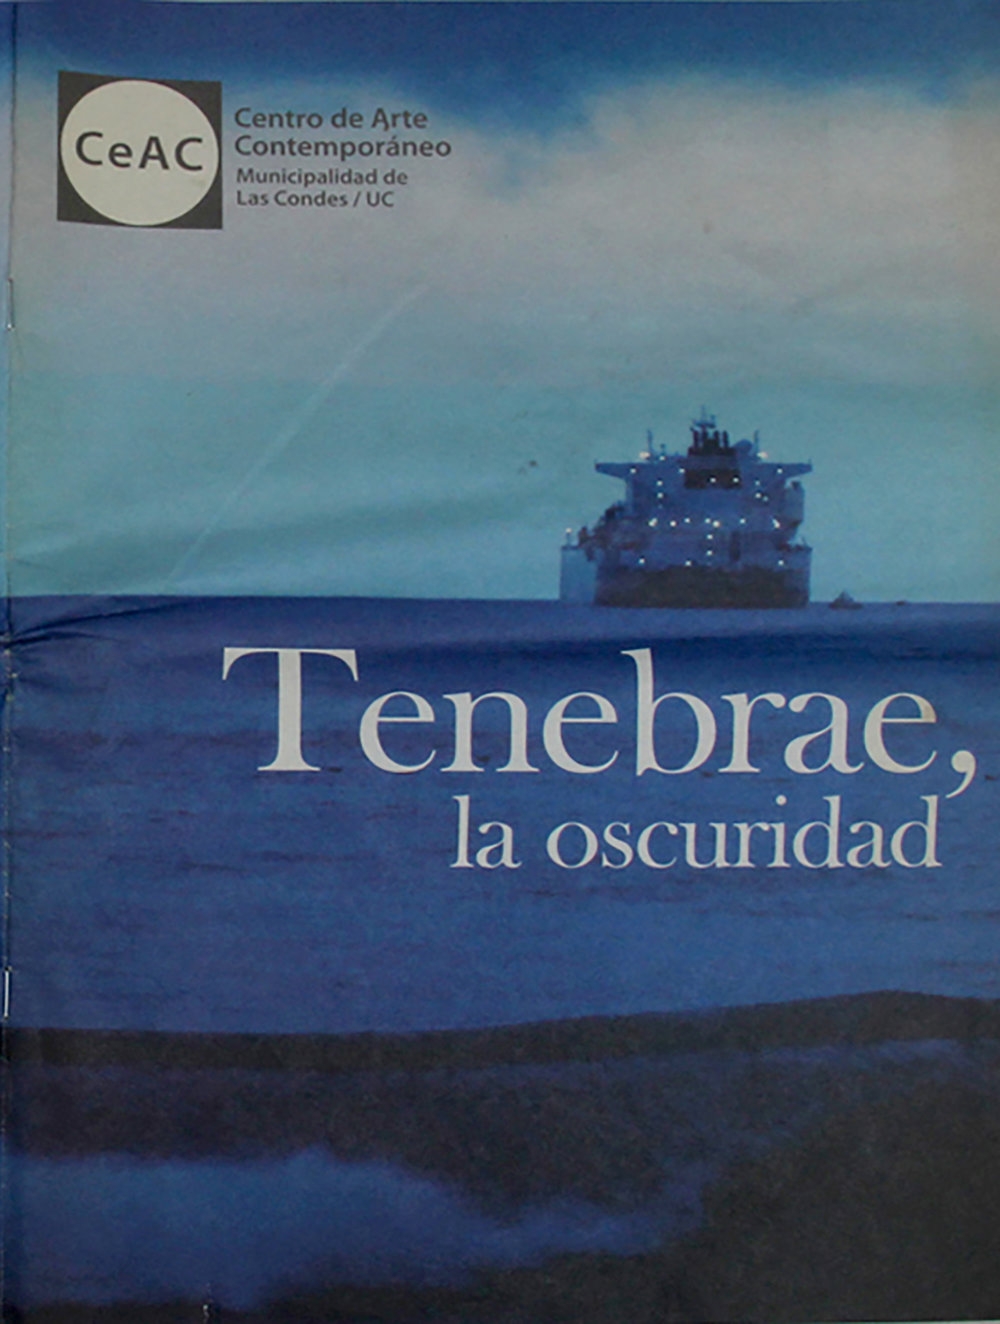 Tenebrae, La Oscuridad (2011)  Author: Francisca Garcia  Editor: Francisca Garcia  30 pages  Spanish  Softcover, 35 x 25 cm.  Published by CeAC, Centro de Arte Contemporáneo, CL